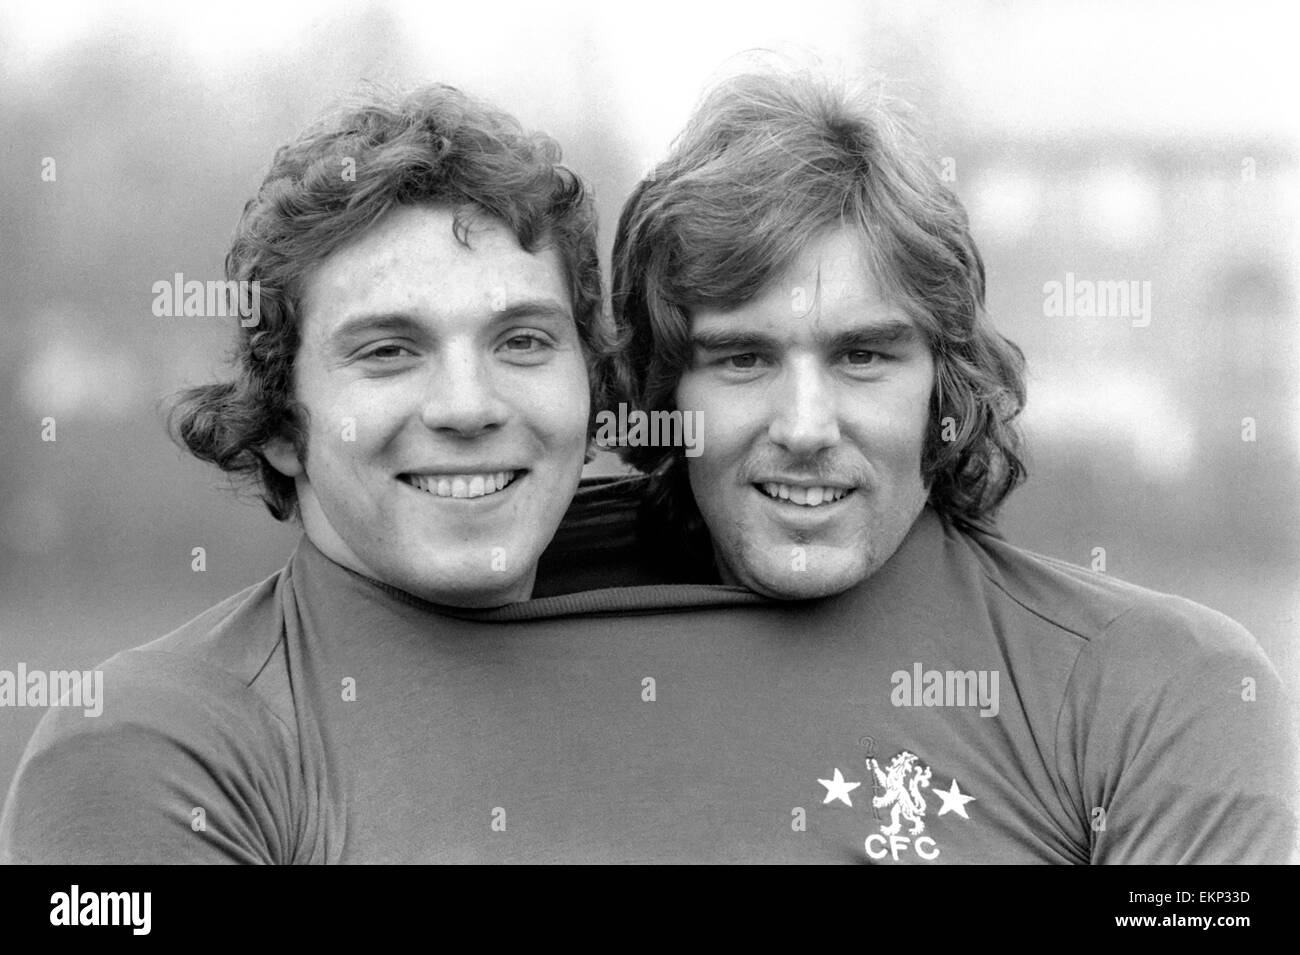 Steve Finnieston (20) striker and John Sparrow (17) defender members of the Chelsea Squad, pictured both wearing - Stock Image